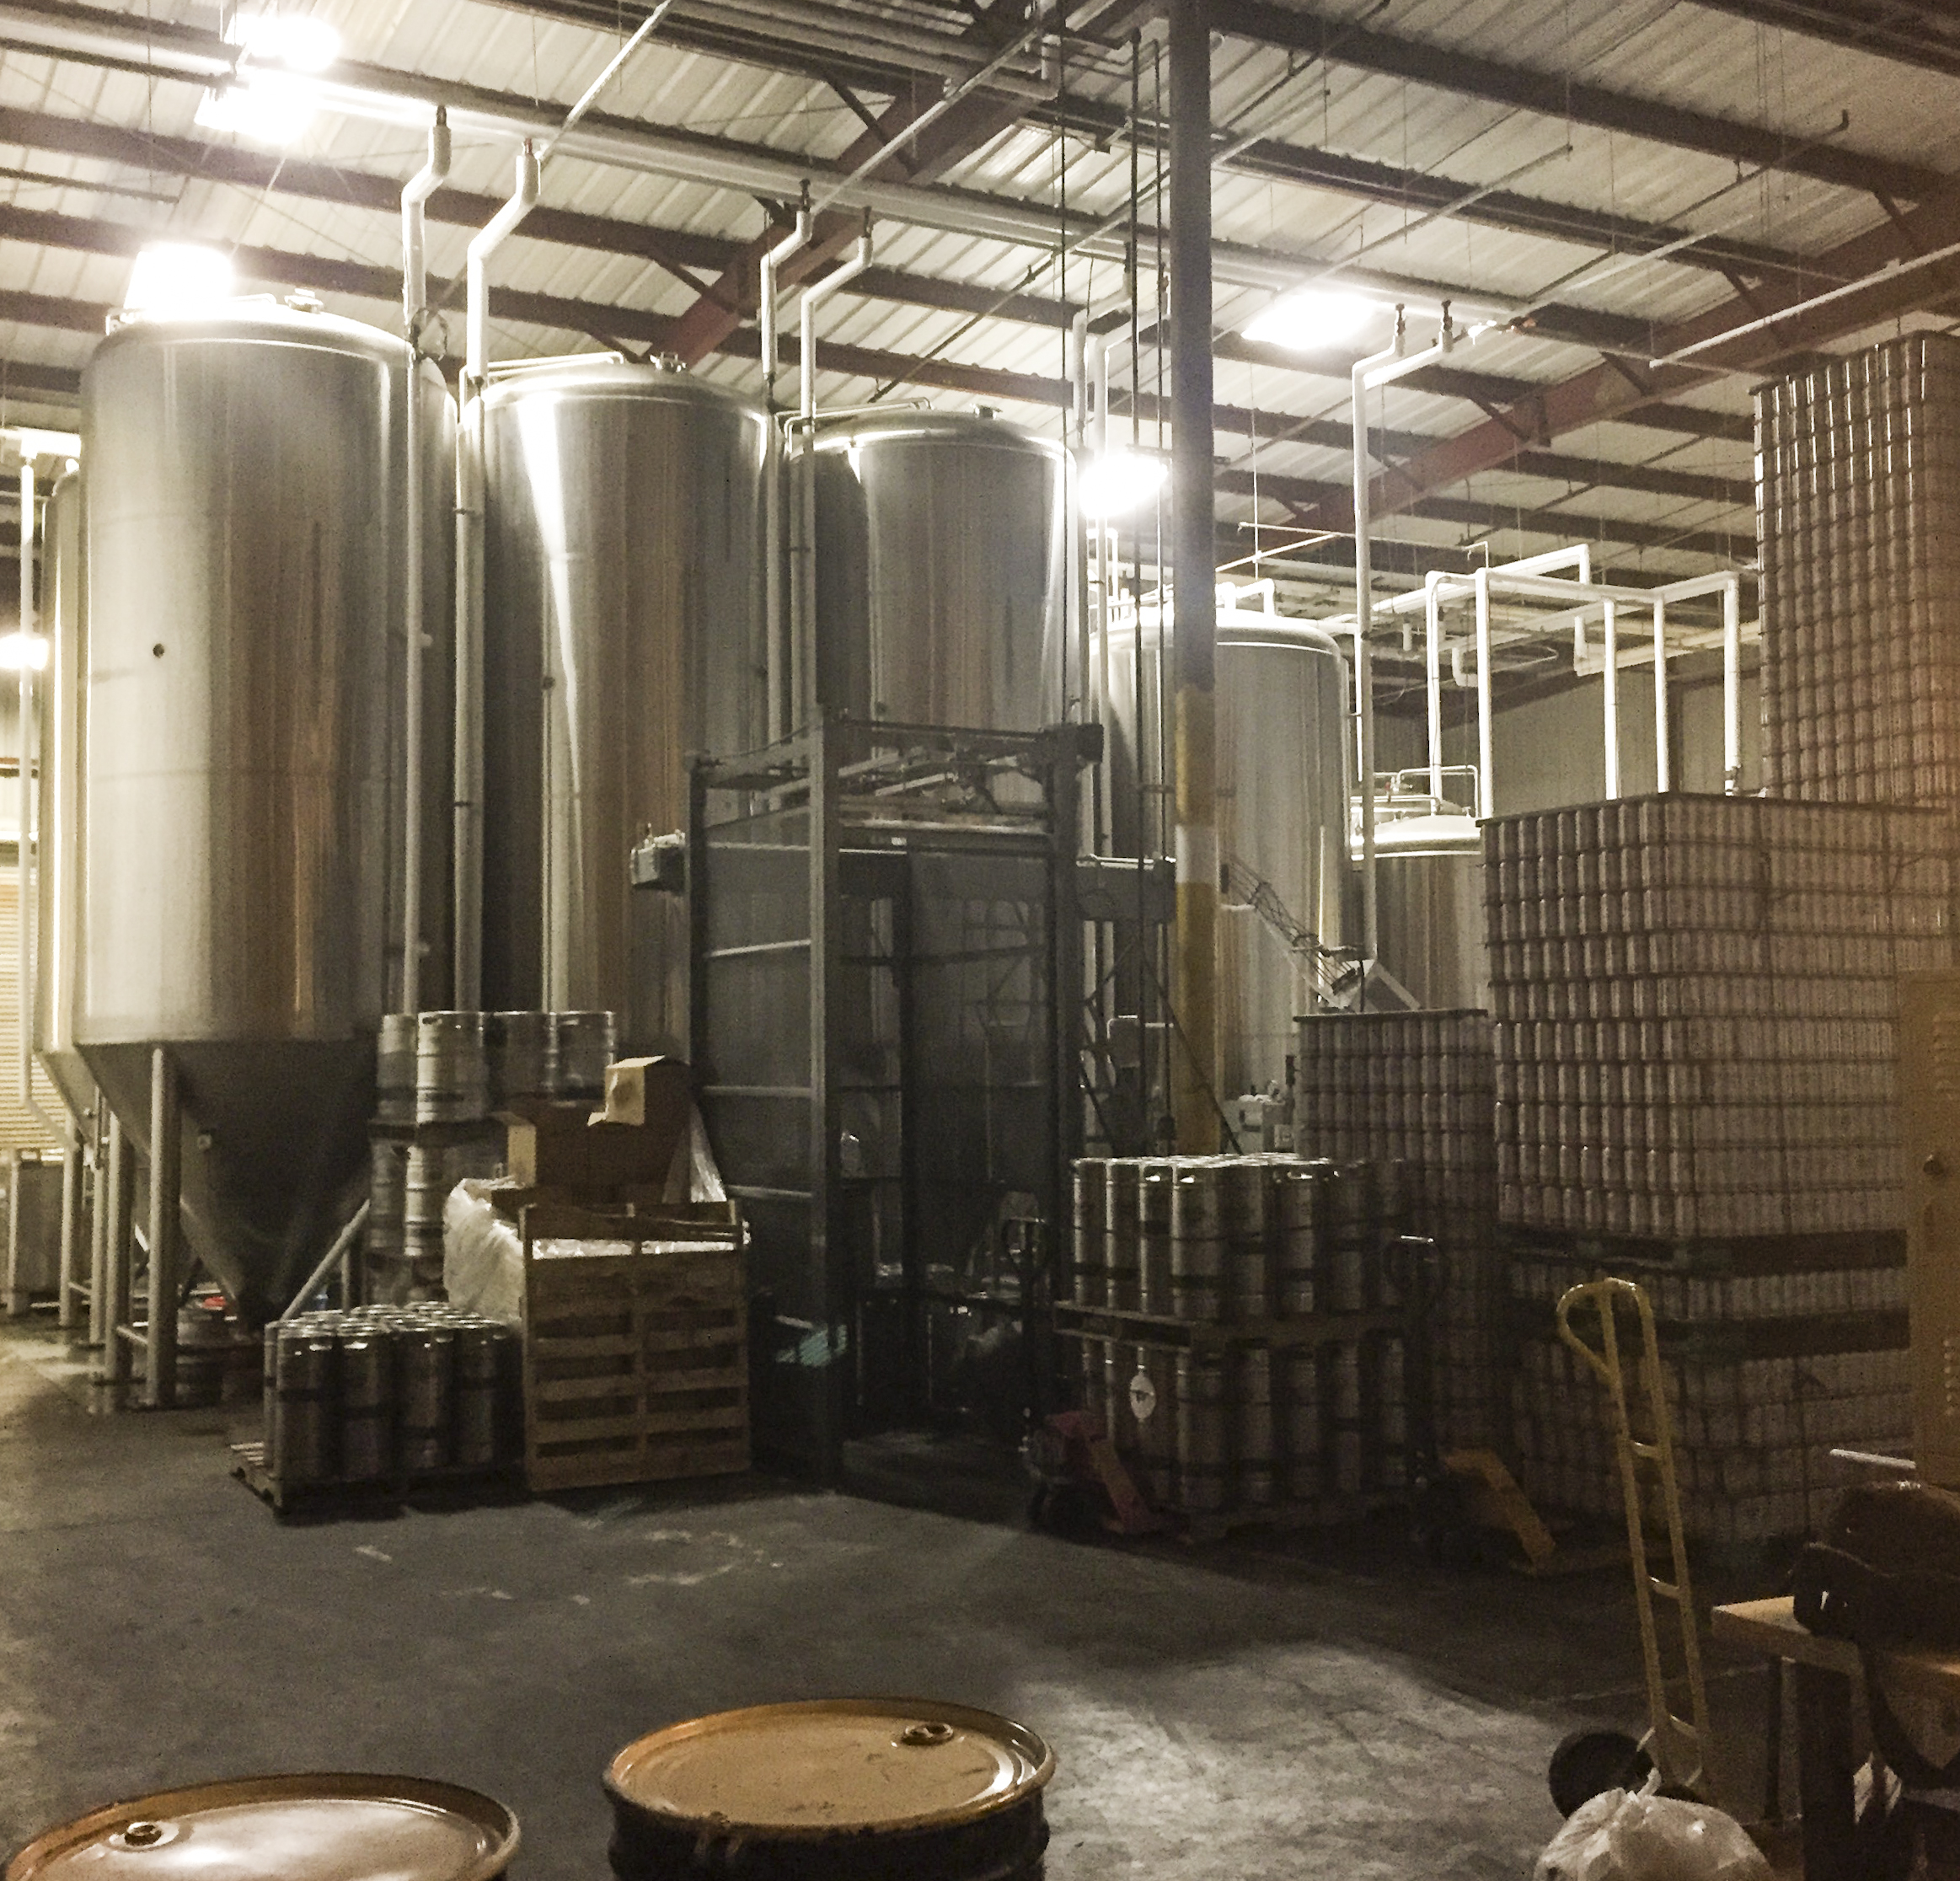 Modern Times Brewery, a San Diego craft brewery, said their biggest problem is being able to brew enough beer to keep up with the demand. Check out that sweet set up!